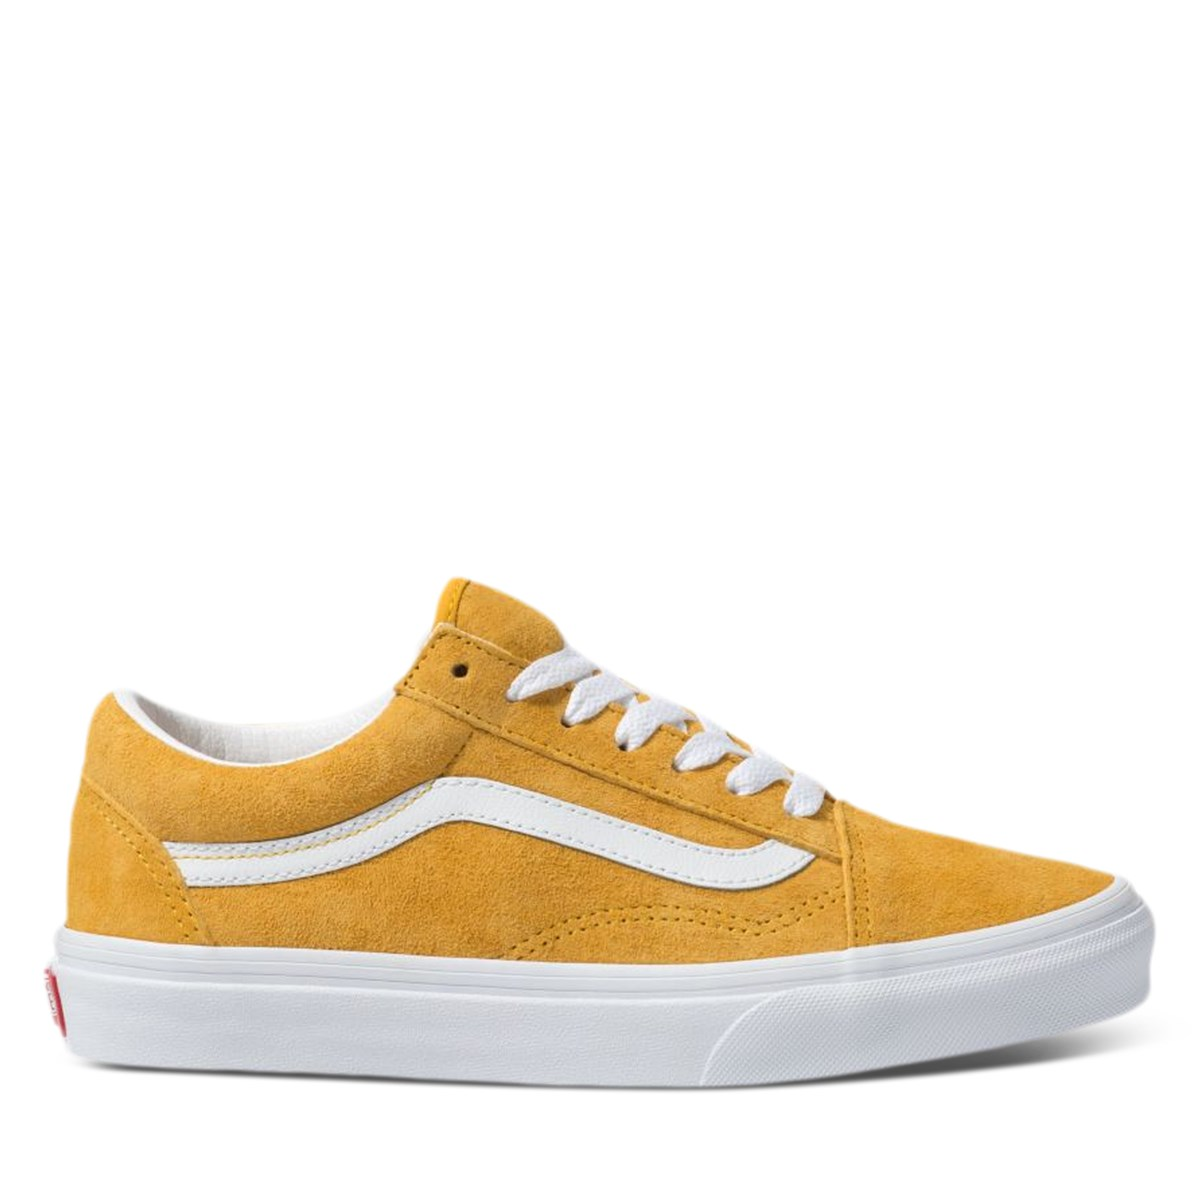 Women's Old Skool Sneakers in Yellow